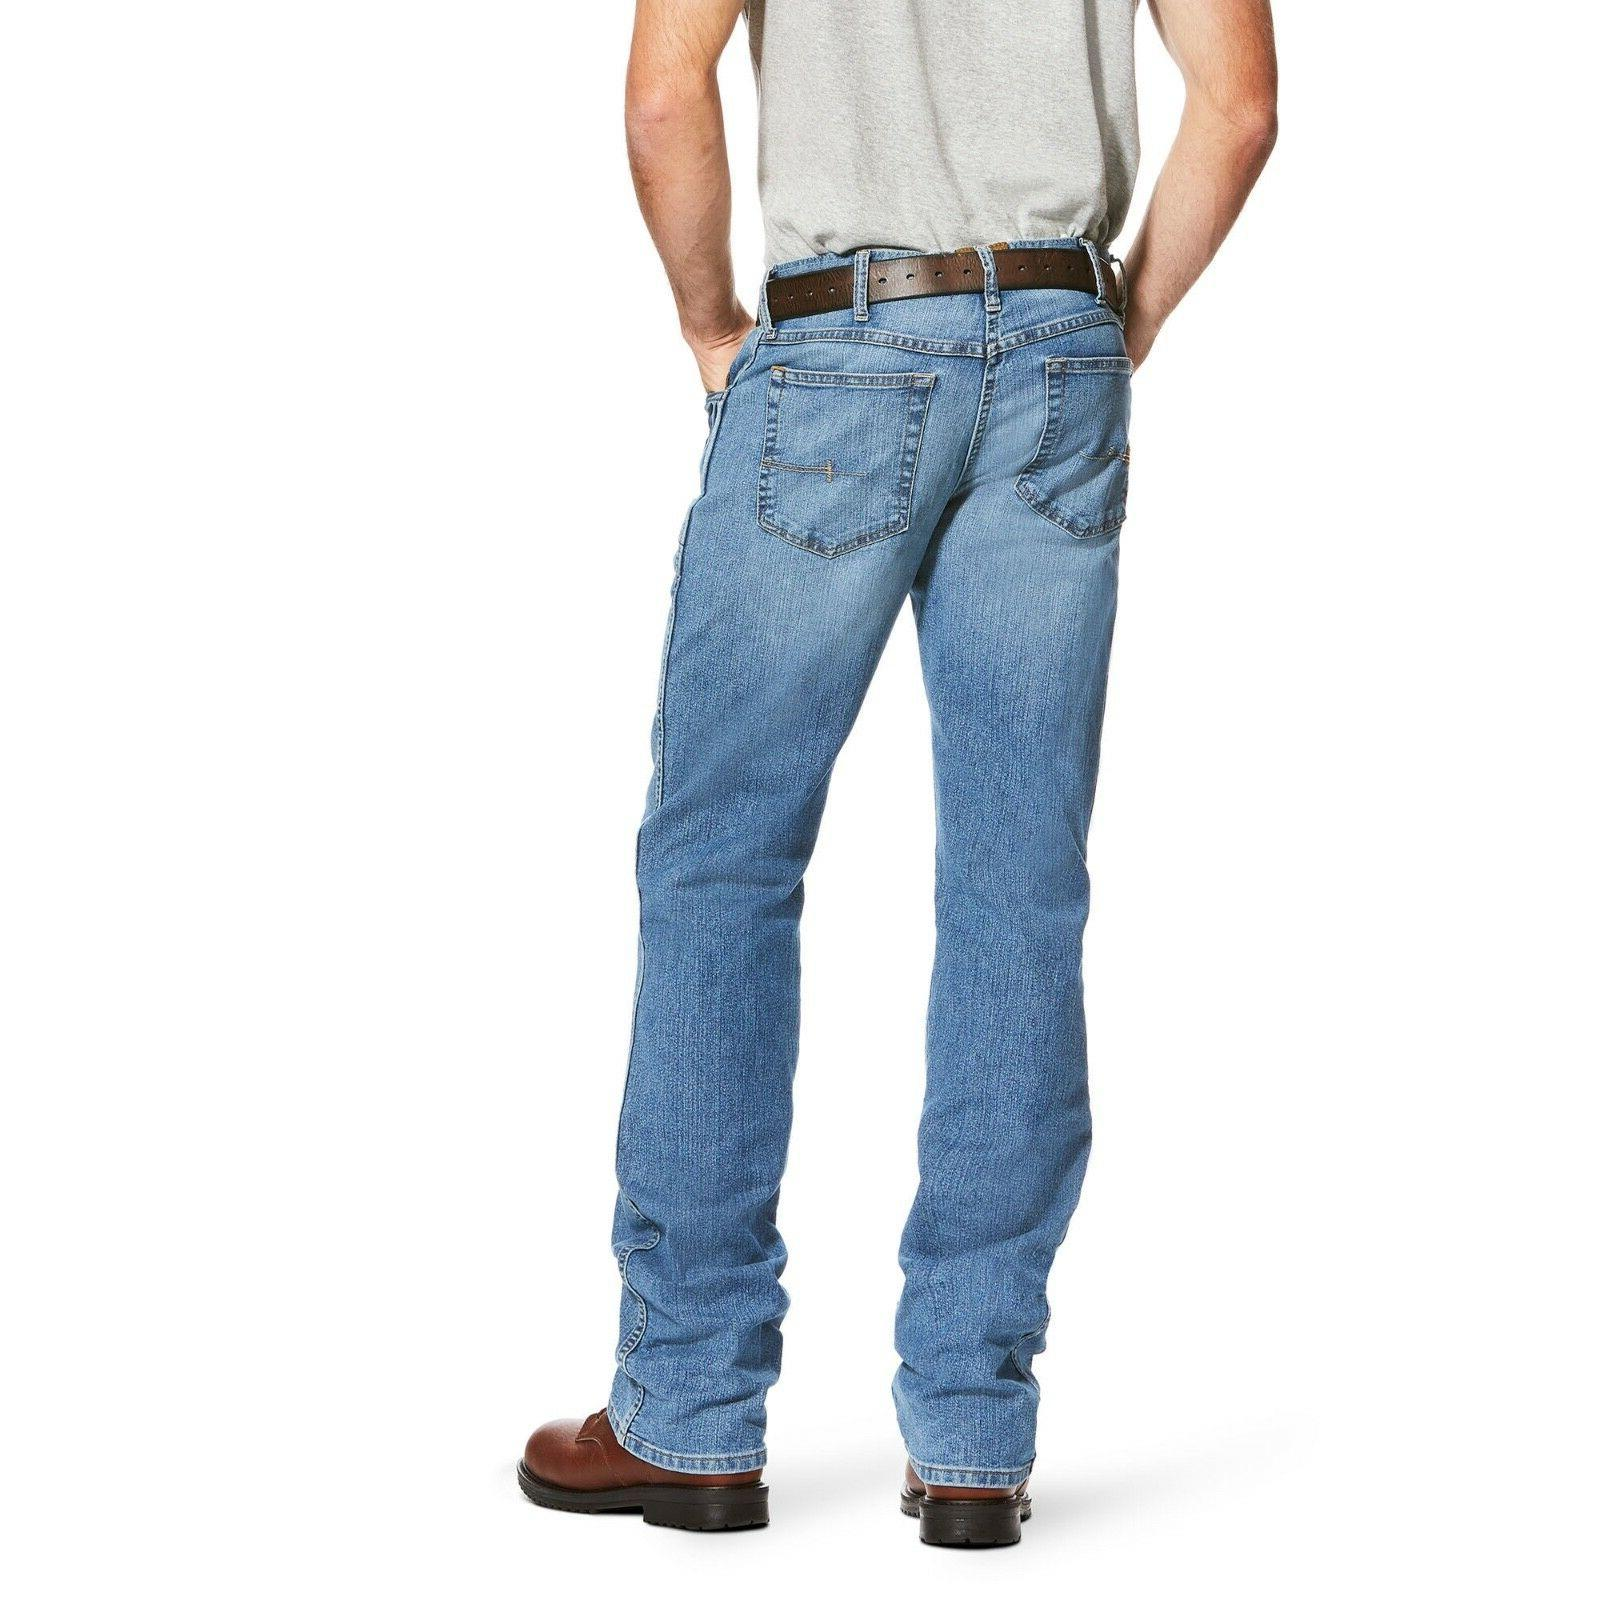 Ariat® Durastretch Basic Boot Jeans